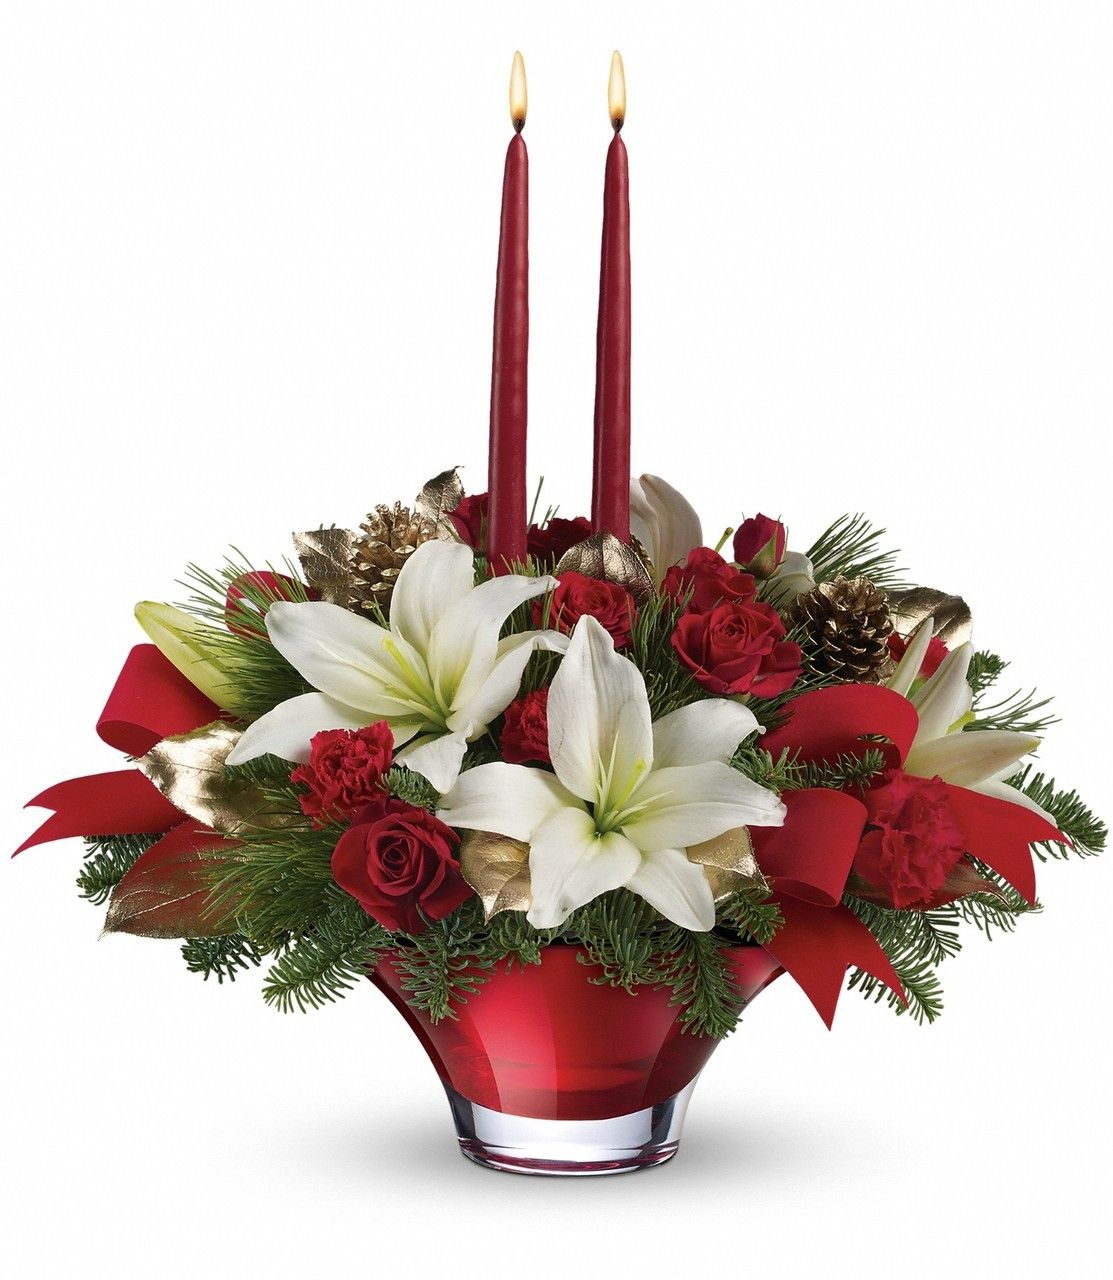 Teleflora Christmas Containers 2019 teleflora christmas containers |  Christmas Flowers, Gifts and